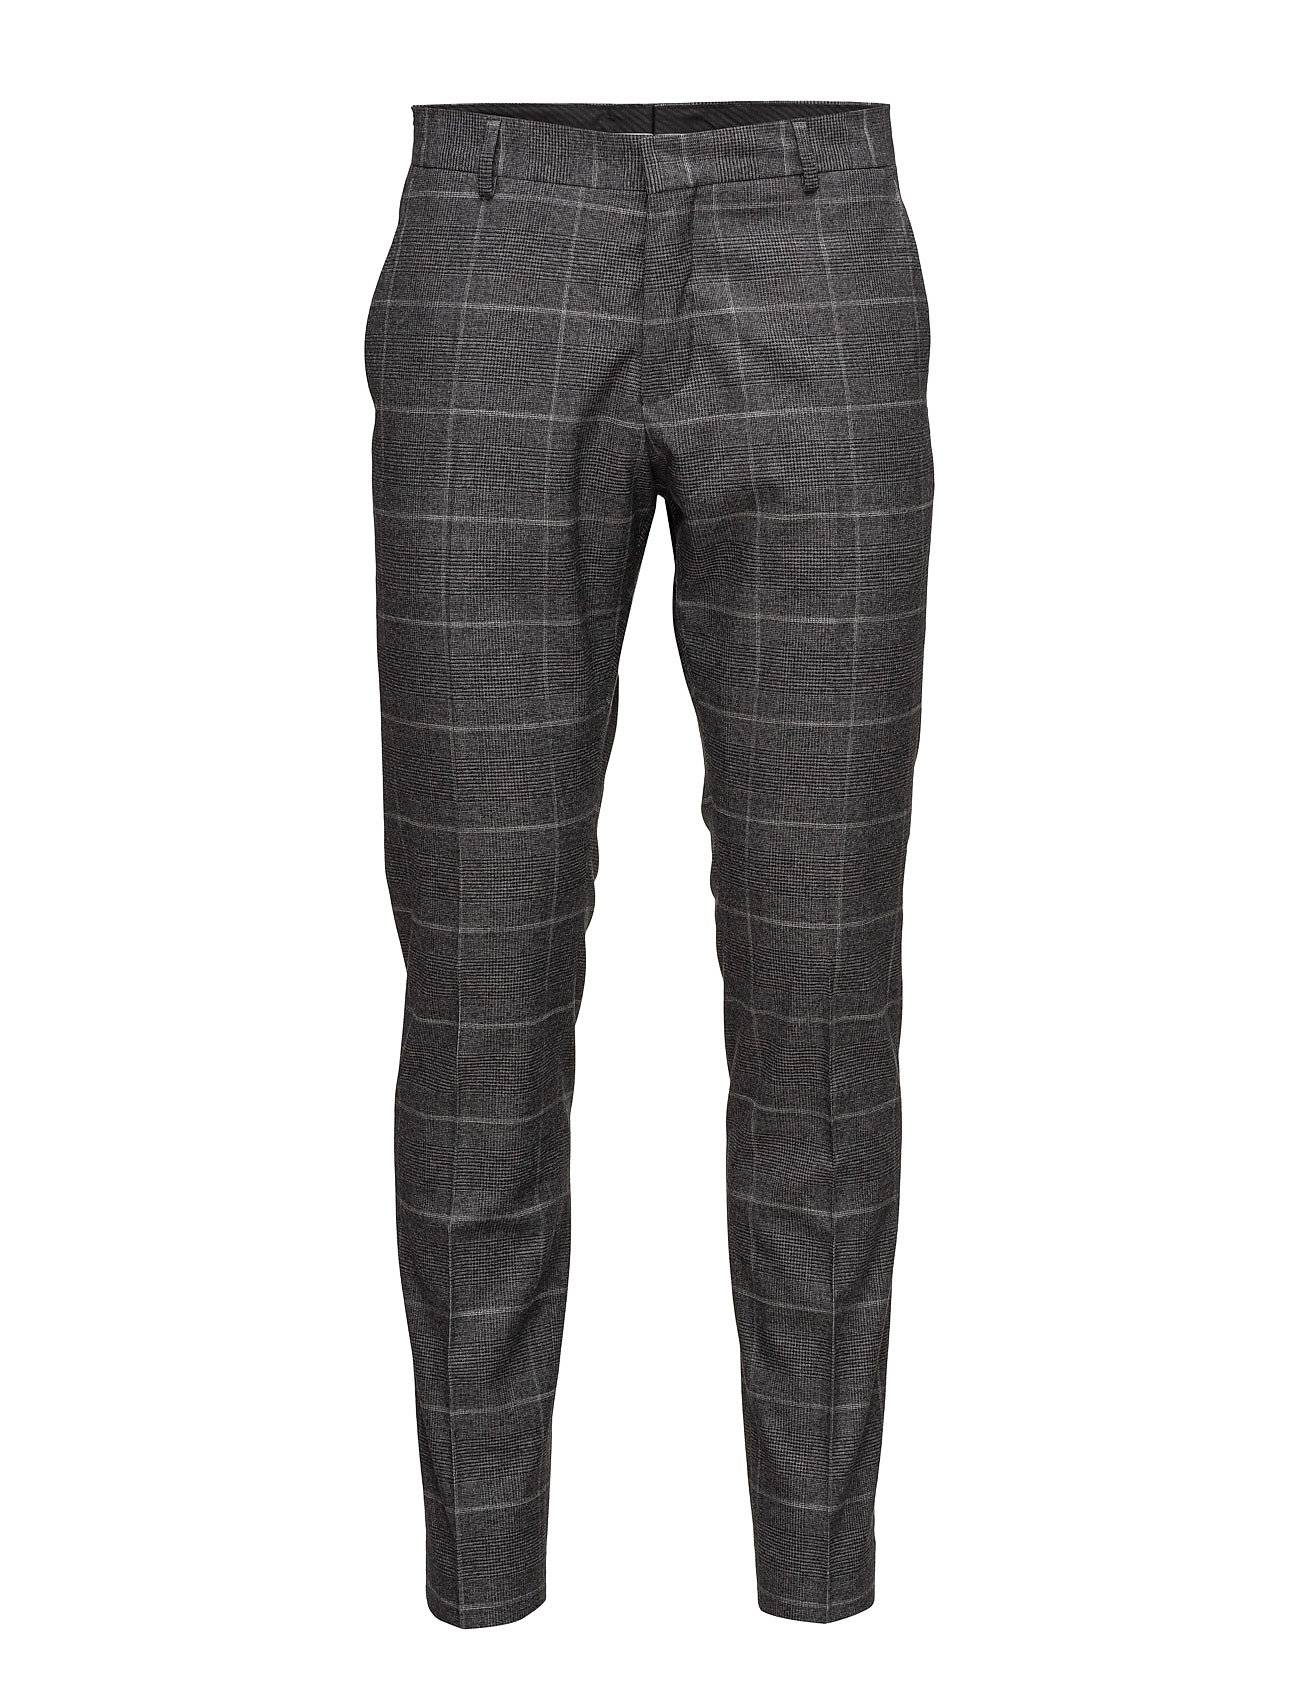 Selected Homme Shdone-Mylodrake2 Grey Check Trouser Sts